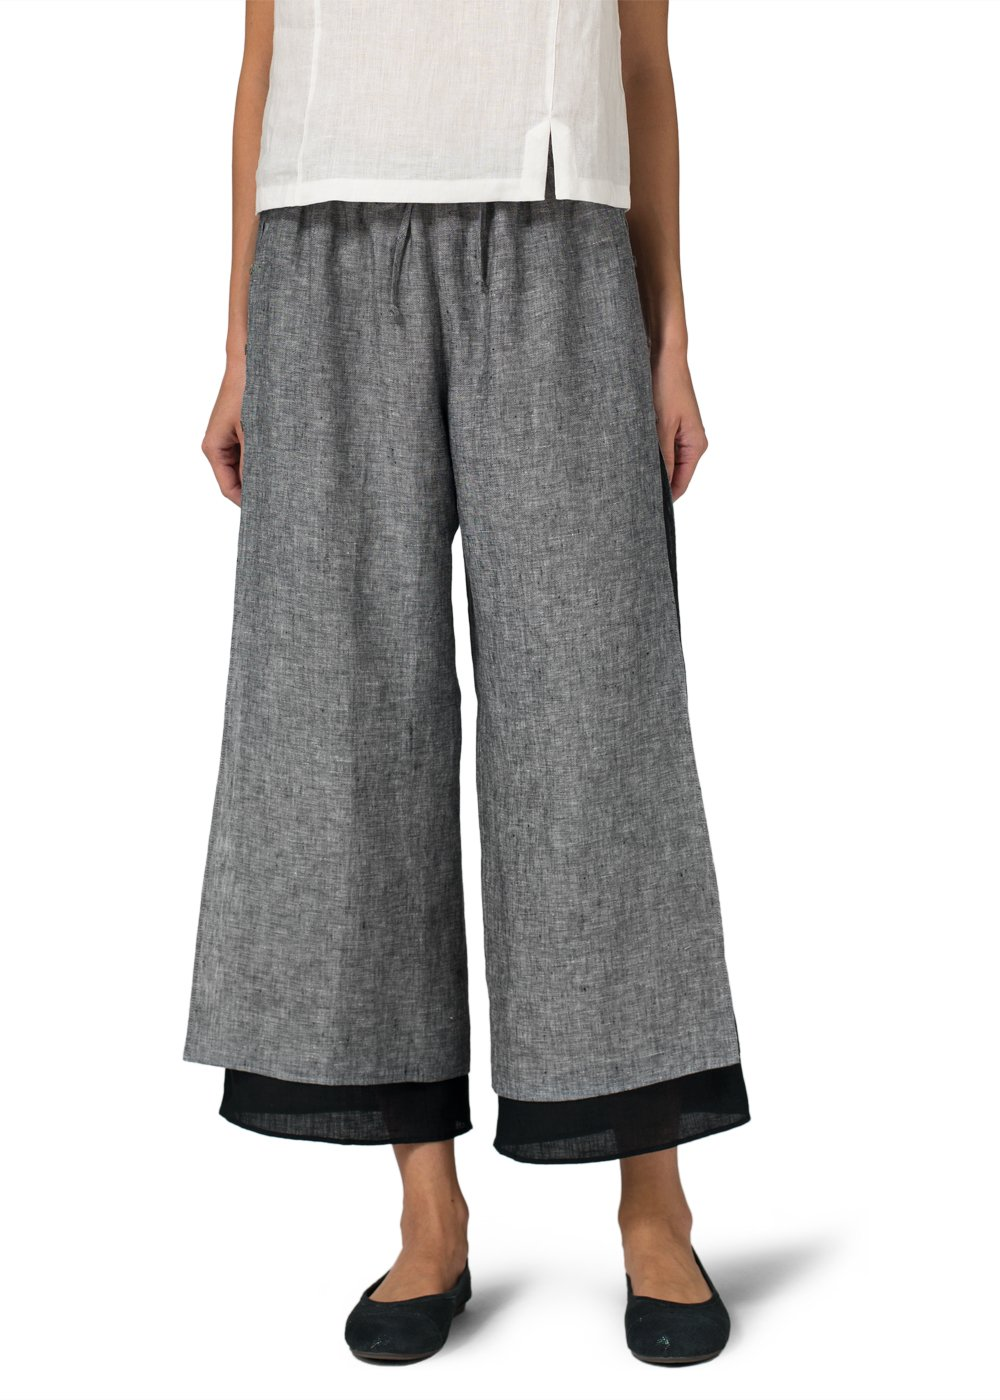 Vivid Linen Double-Layer Cropped Pants With Sea Shell Button-3X-Two Tone Black/Black by Vivid Linen